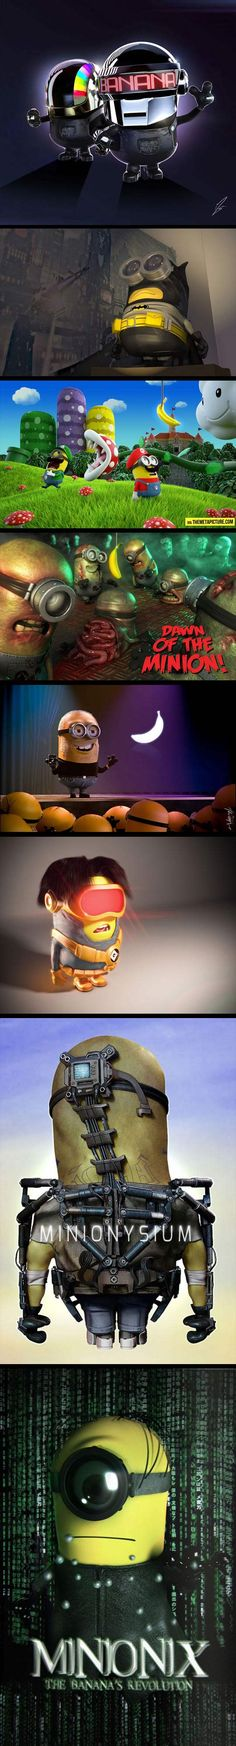 Minions… Minions Everywhere